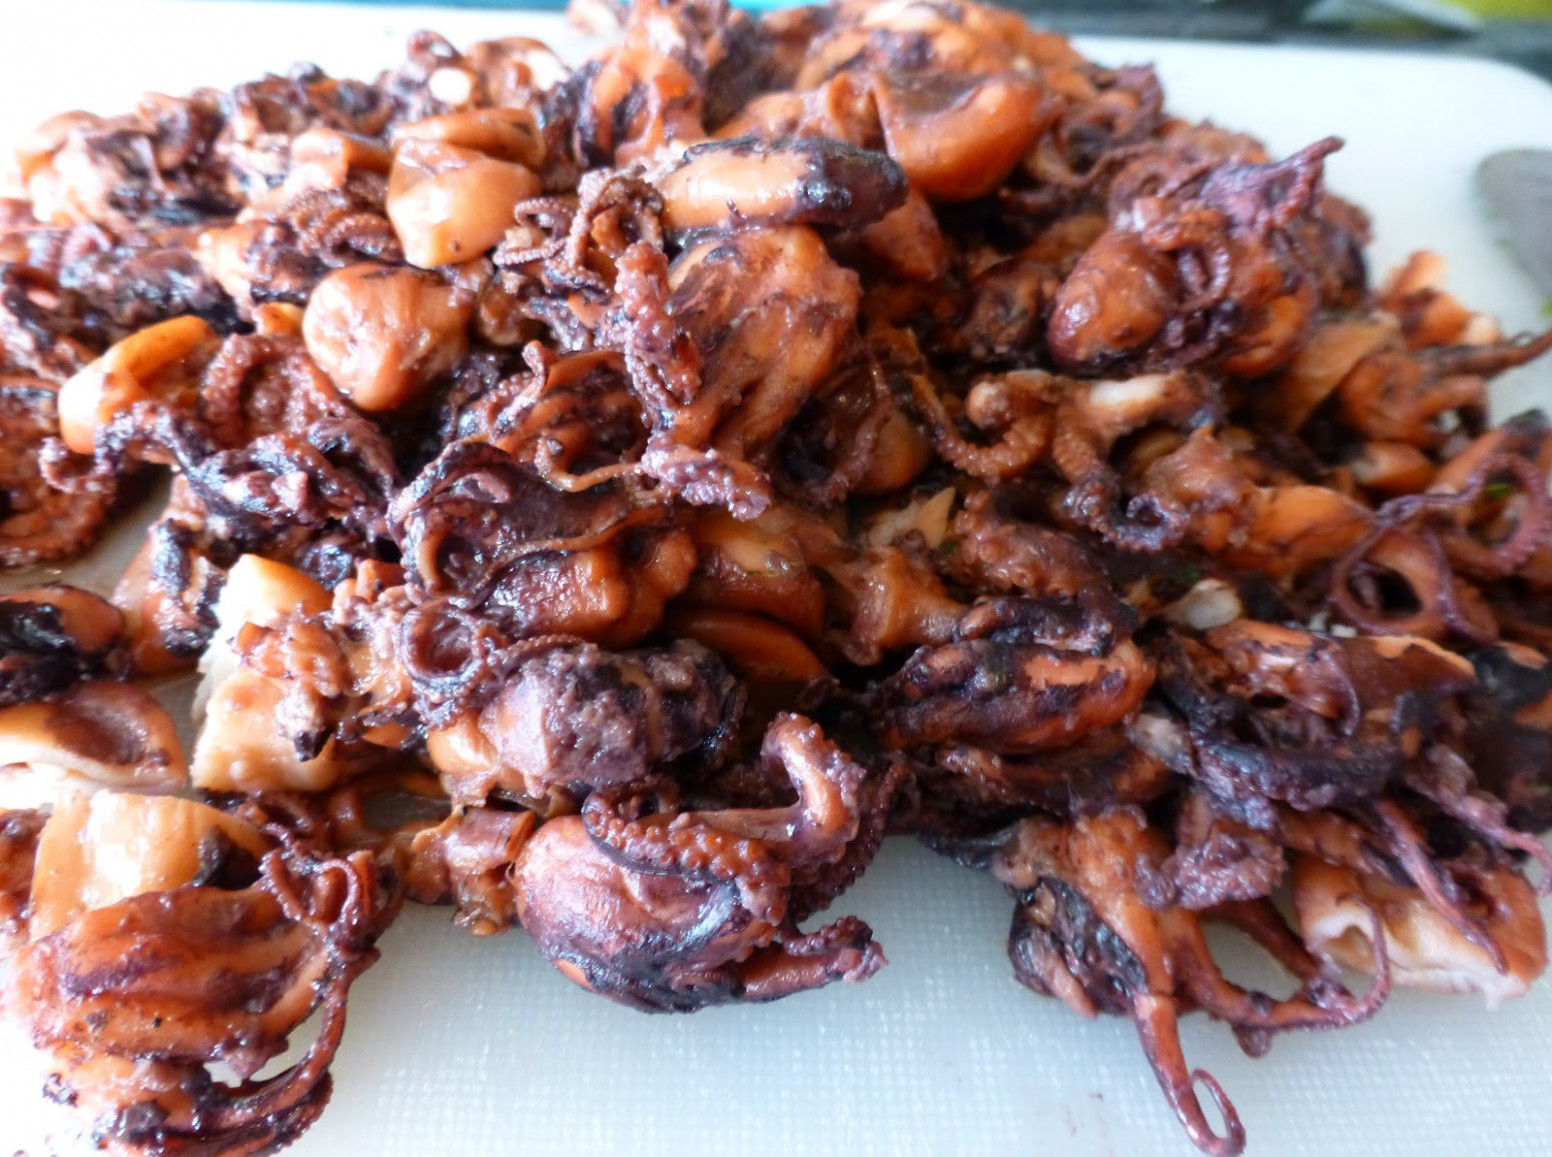 Halal Mama: Rice with Baby Octopus